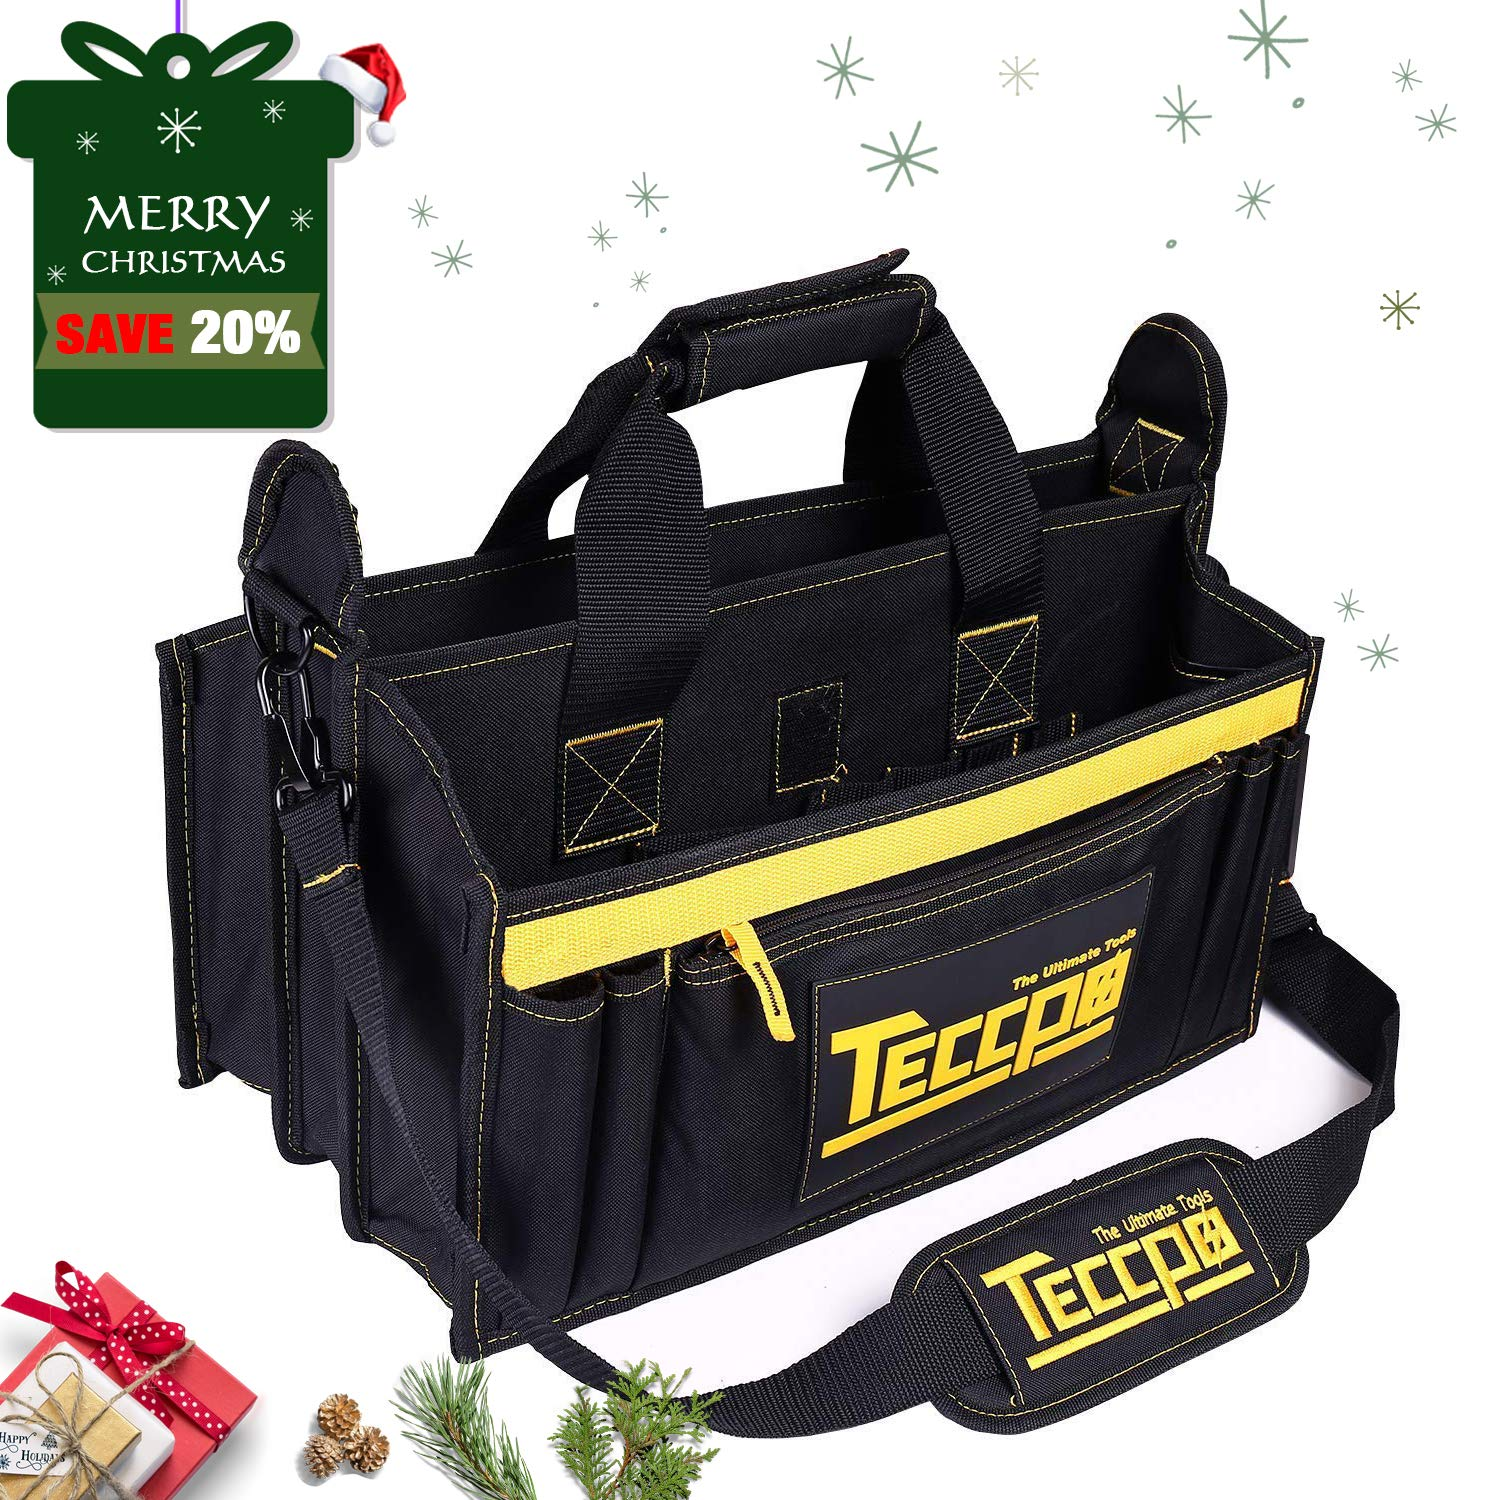 Tool Bag, TECCPO Heavy Duty Bag, Strong Bag Storage with Wear Resistant Rubber Base, Adjustable Shoulder Strap, Rubber Handles, 8 External Pockets, 8 Internal Pouches - THTB02B